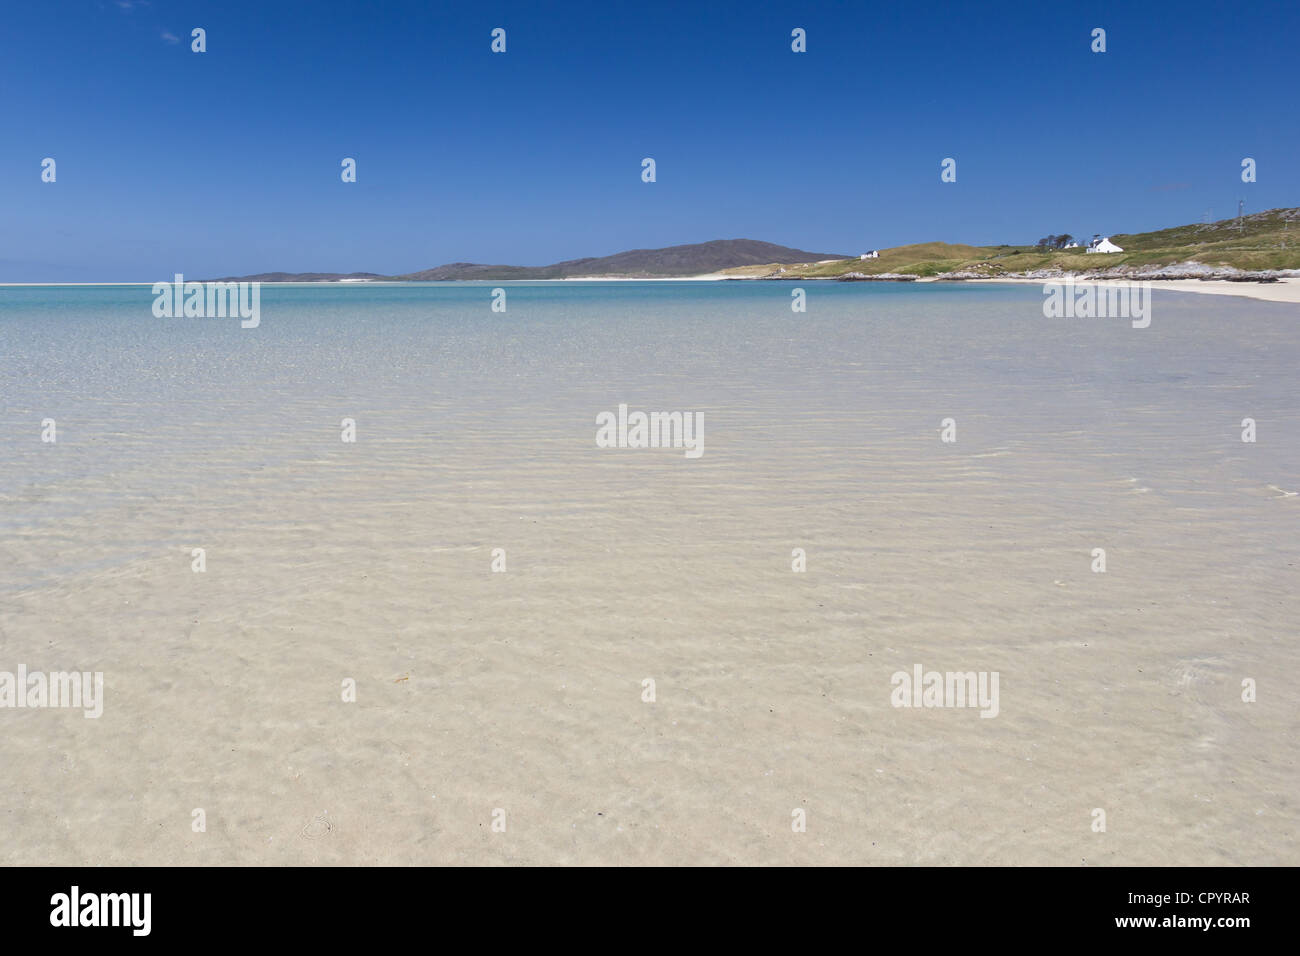 The beach of Luskentyre (Isle of Harris - Outer Hebrides of Scotland) - Stock Image